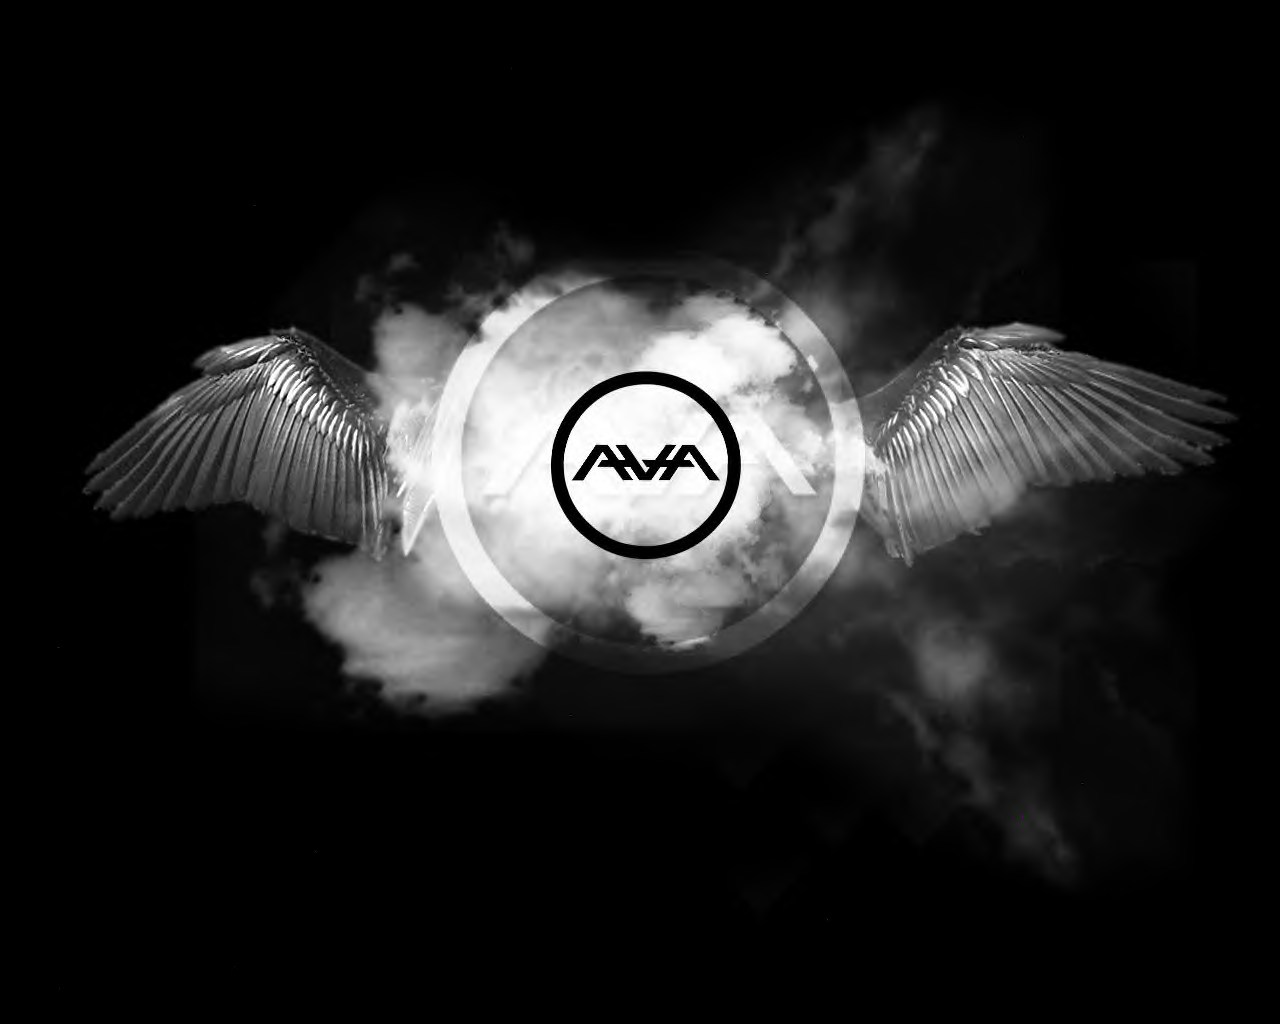 Angels & Airwaves - Angels and Airwaves 1280x1024